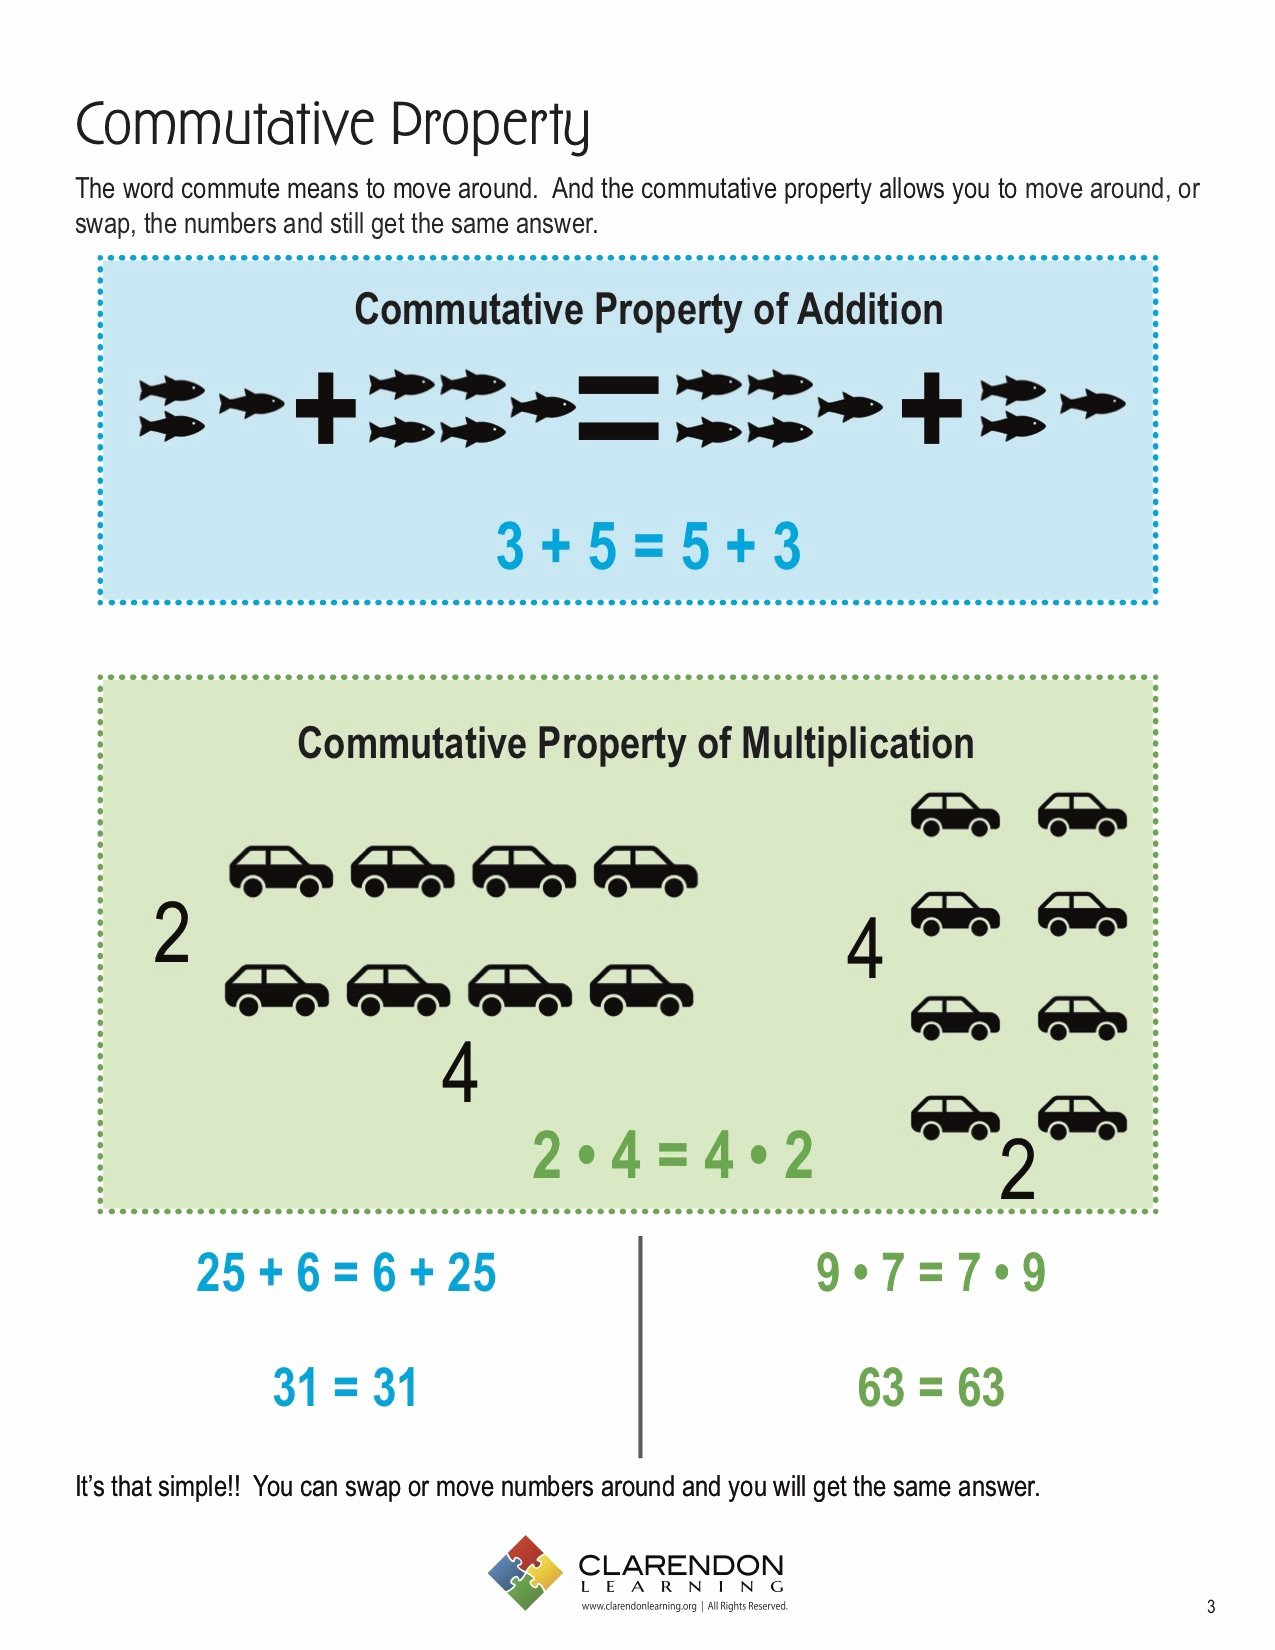 Properties Of Multiplication Worksheets Lovely Cummutative Property Worksheet